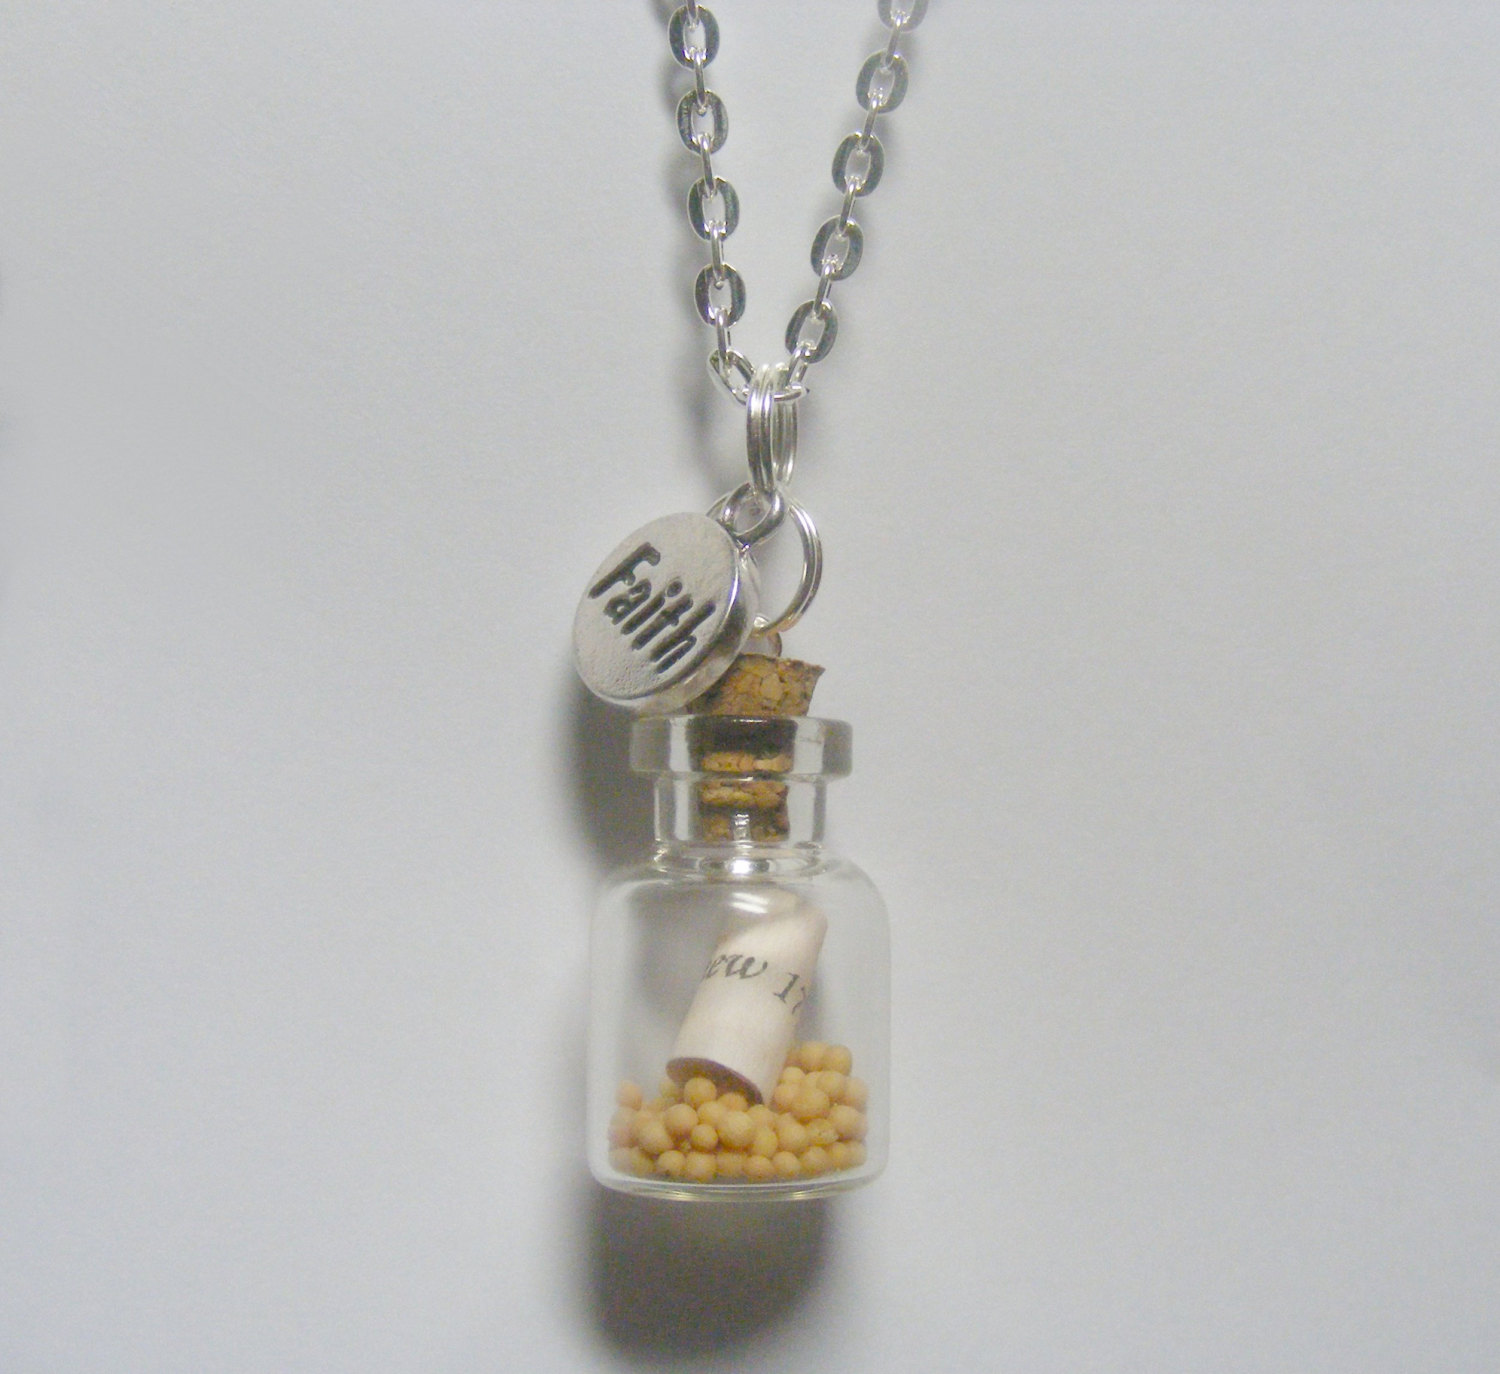 Mustard seed miniature bottle necklace miniature food jewelry faith mustard seed miniature bottle necklace miniature food jewelrymustard seed pendantchristian jewelryfaith pendantchristian necklace aloadofball Image collections